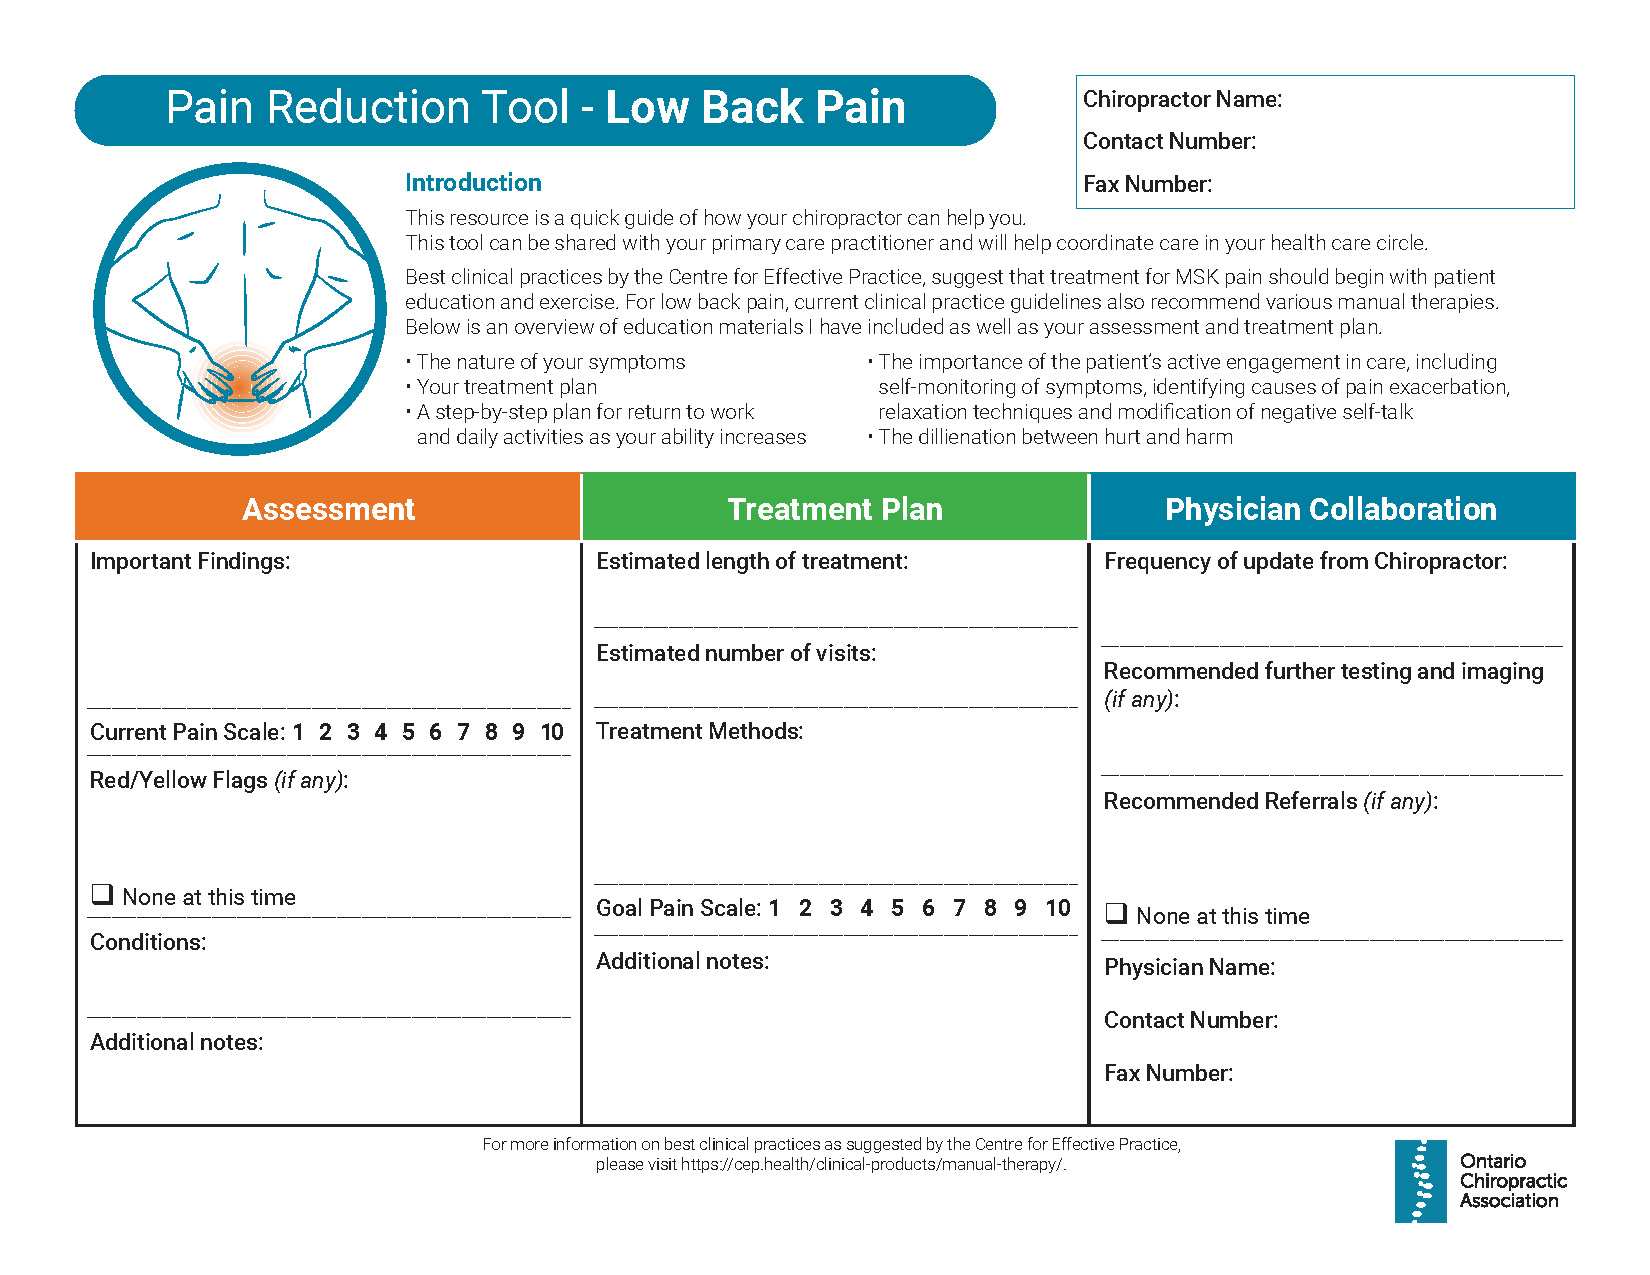 Thumbnail of Pain Reduction Tool - Low Back Pain